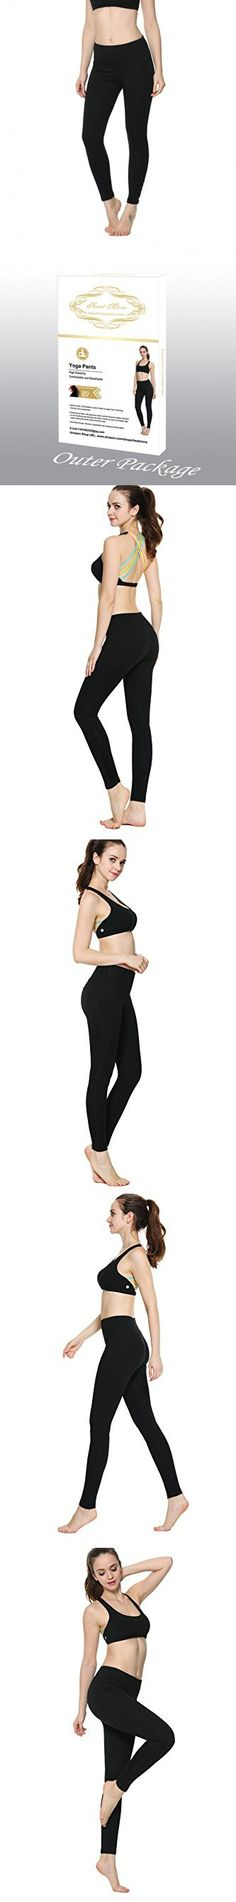 Women's Girl Mesh Stretchy Tights exercise Fitness Non see through Leggings Workout Gym Running Loungewear Yoga Pants (Small, Black)